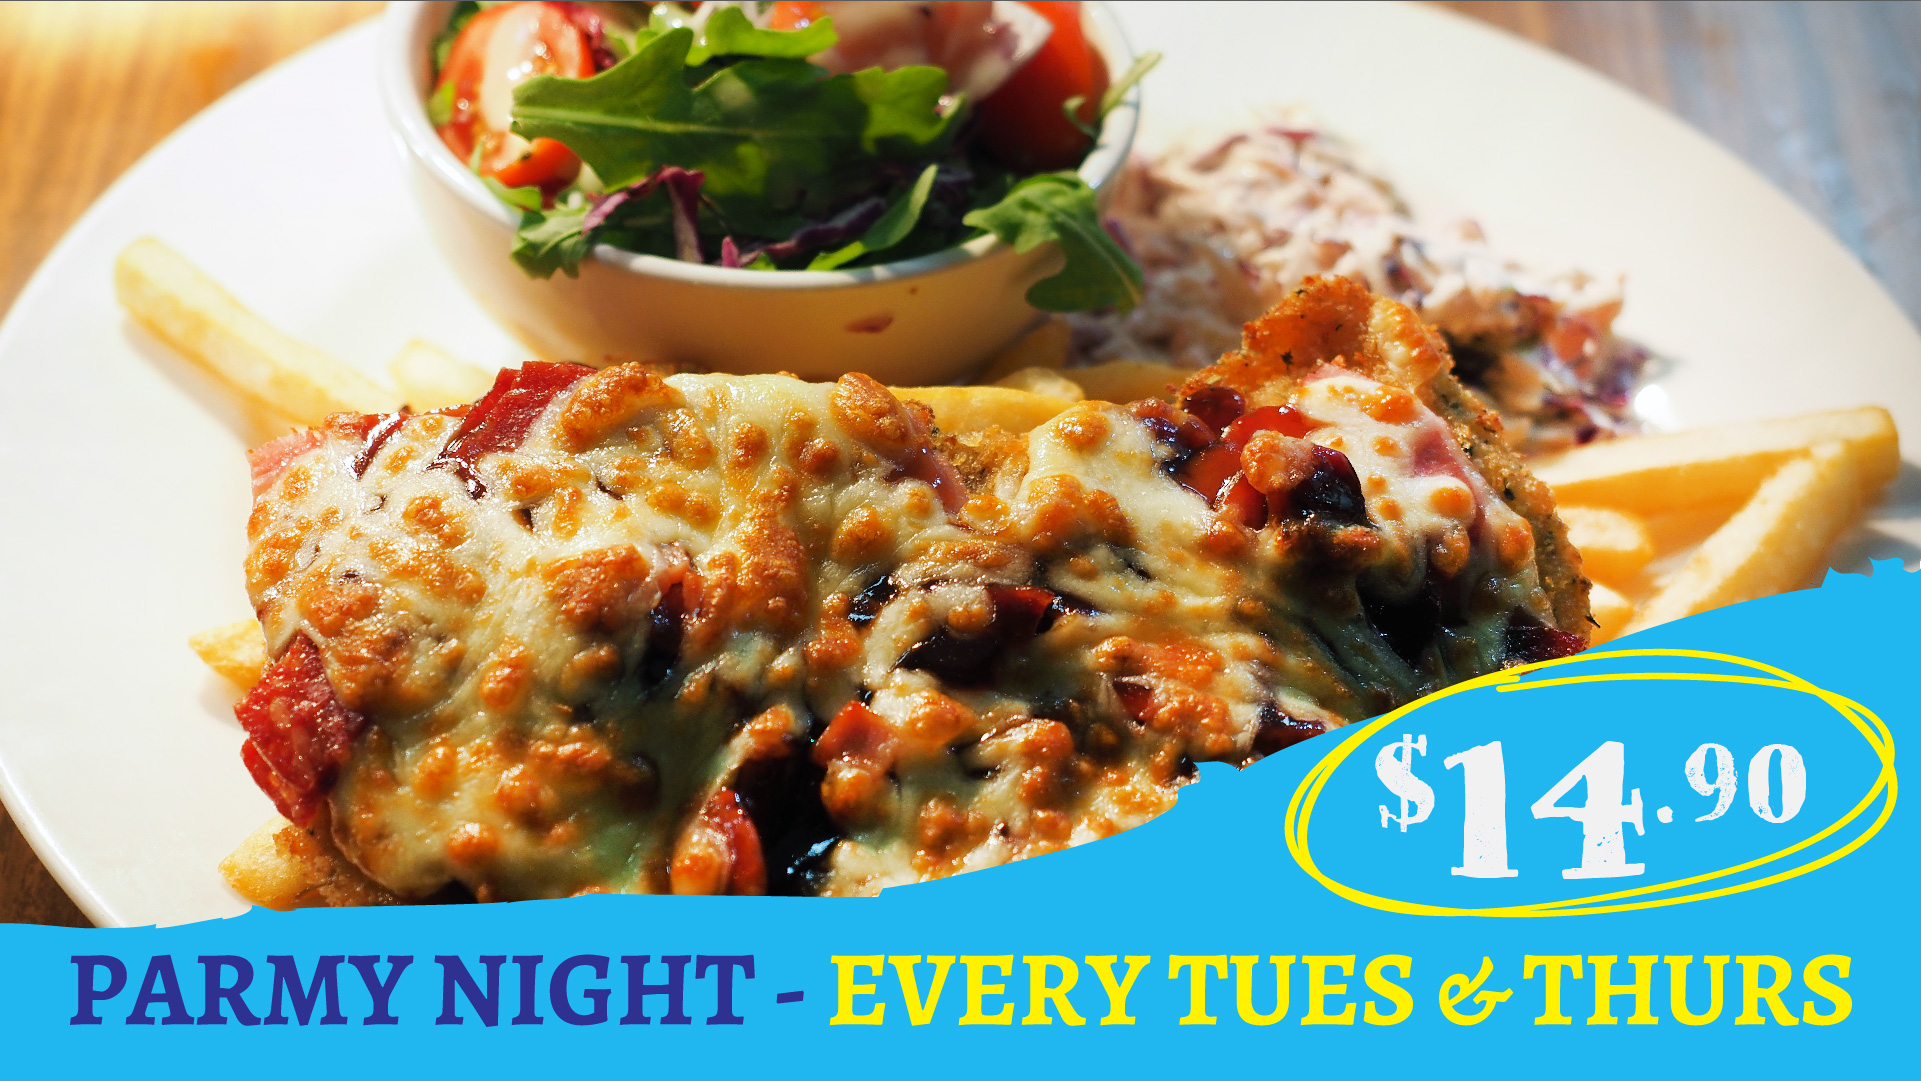 Tues & Thurs Parmy Night at Gowrie Road Hotel